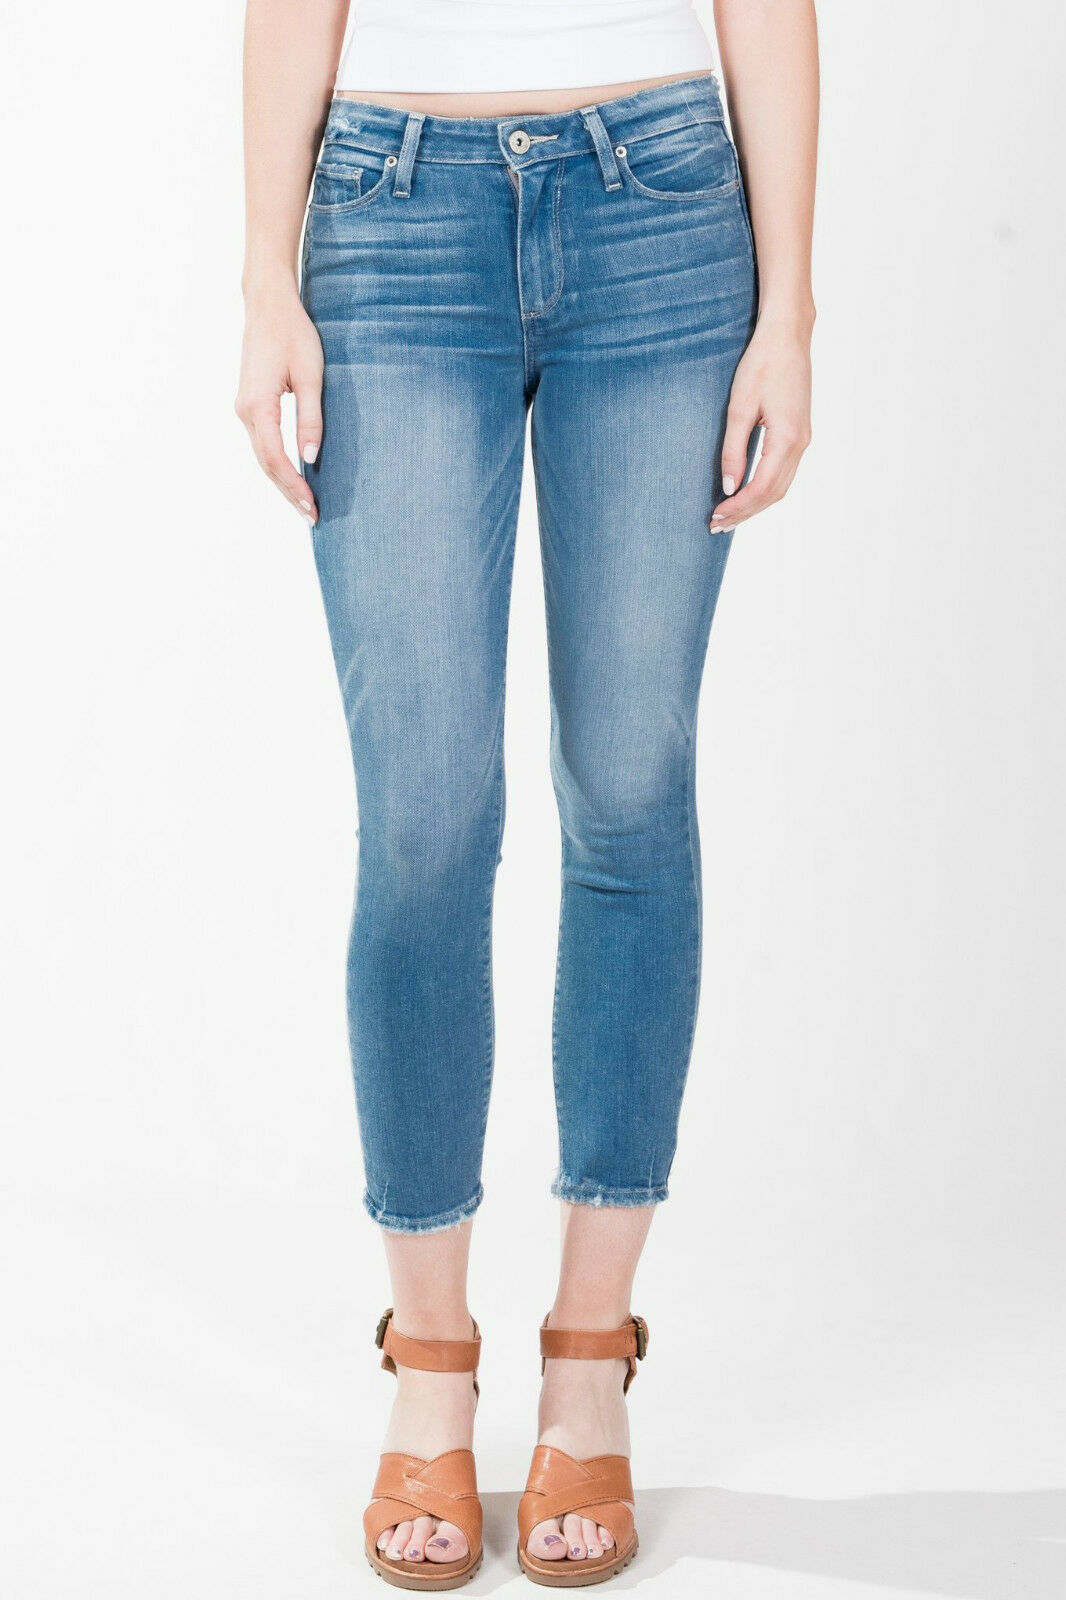 New Paige Hoxton Crop Destroyed Hem Stretch Denim Skinny Jeans Size 26x25